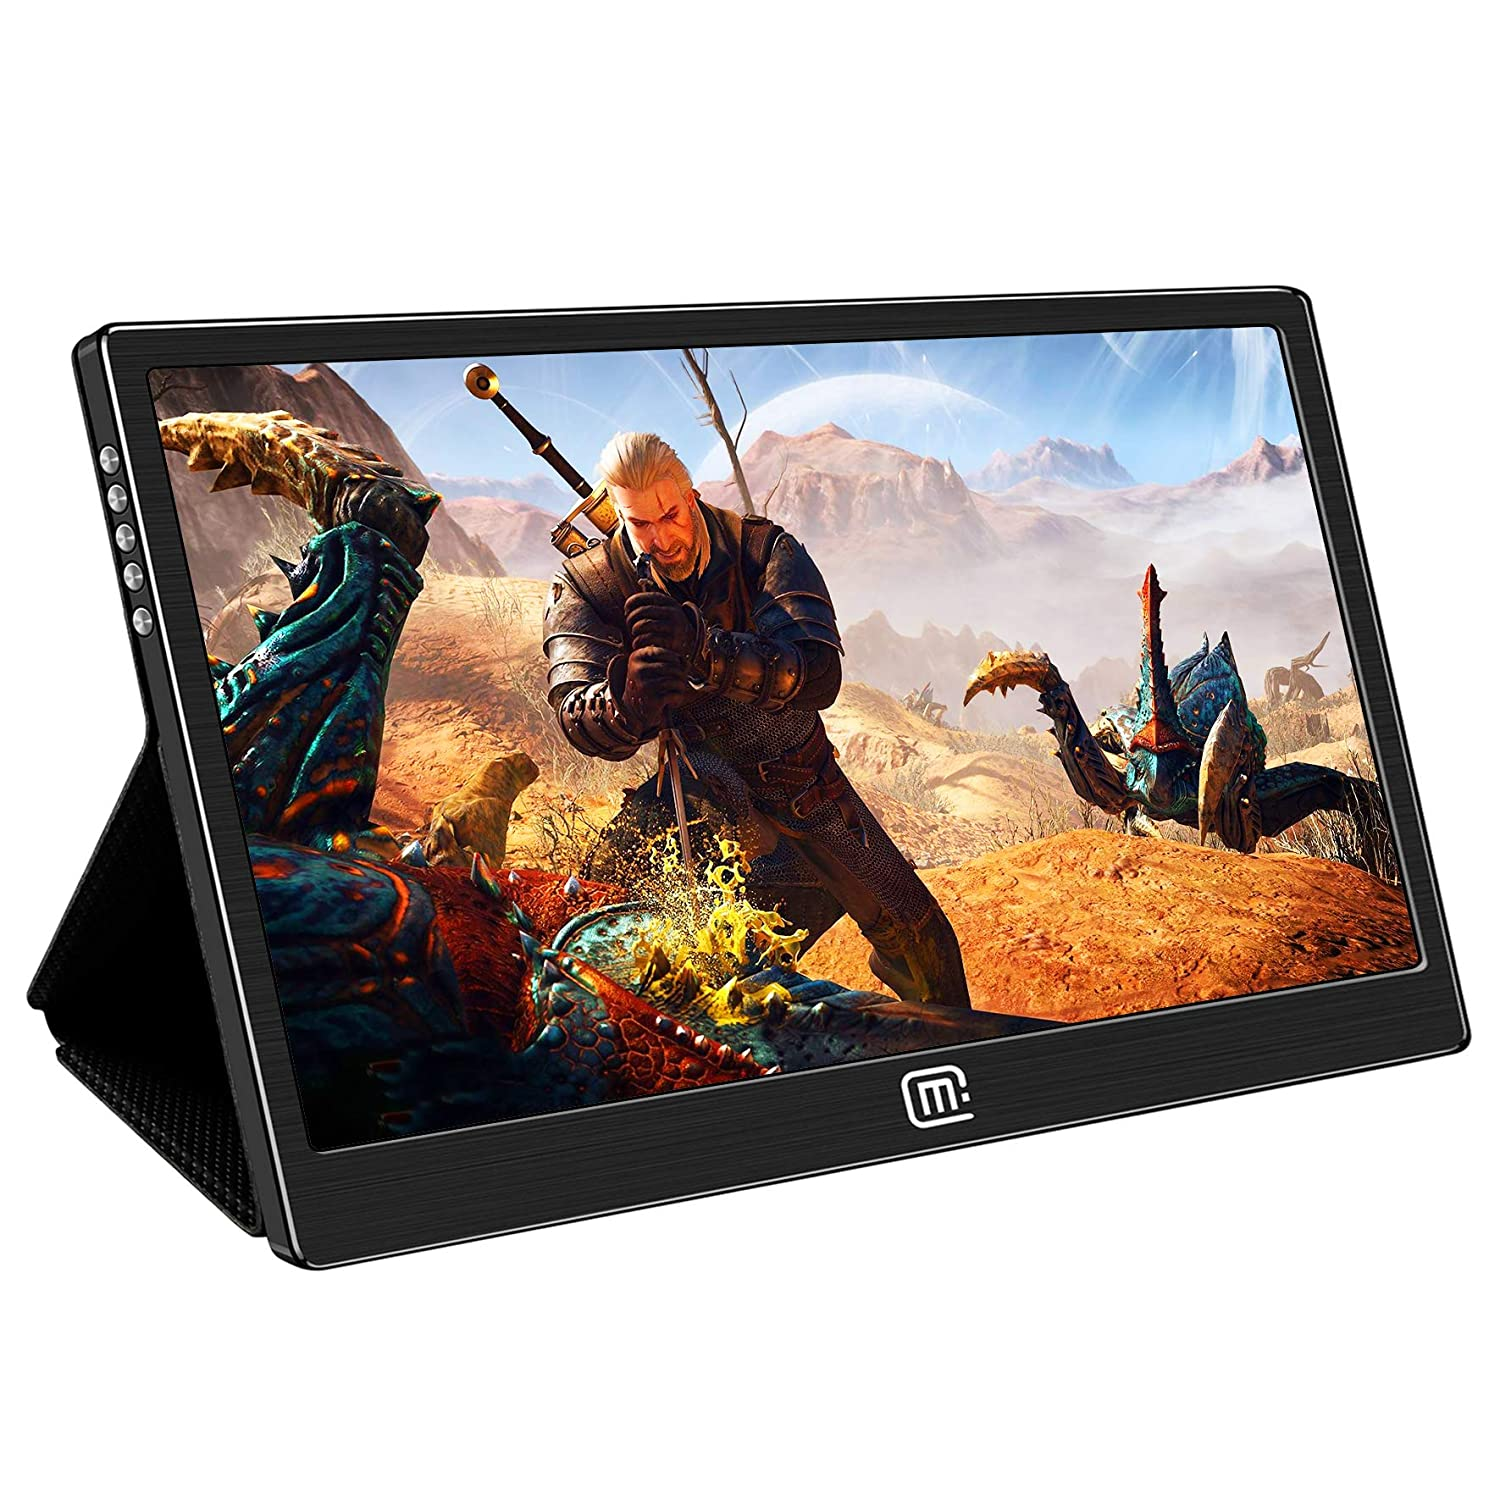 13.3 Inch 1080P Portable Monitor,1920 1080 Gaming Monitor Display IPS Screen Type-C and Mini HDMI Input HDR,PD Charge,OTG Port Compatible with Laptops Mini PC Smartphone Nintendo Switch